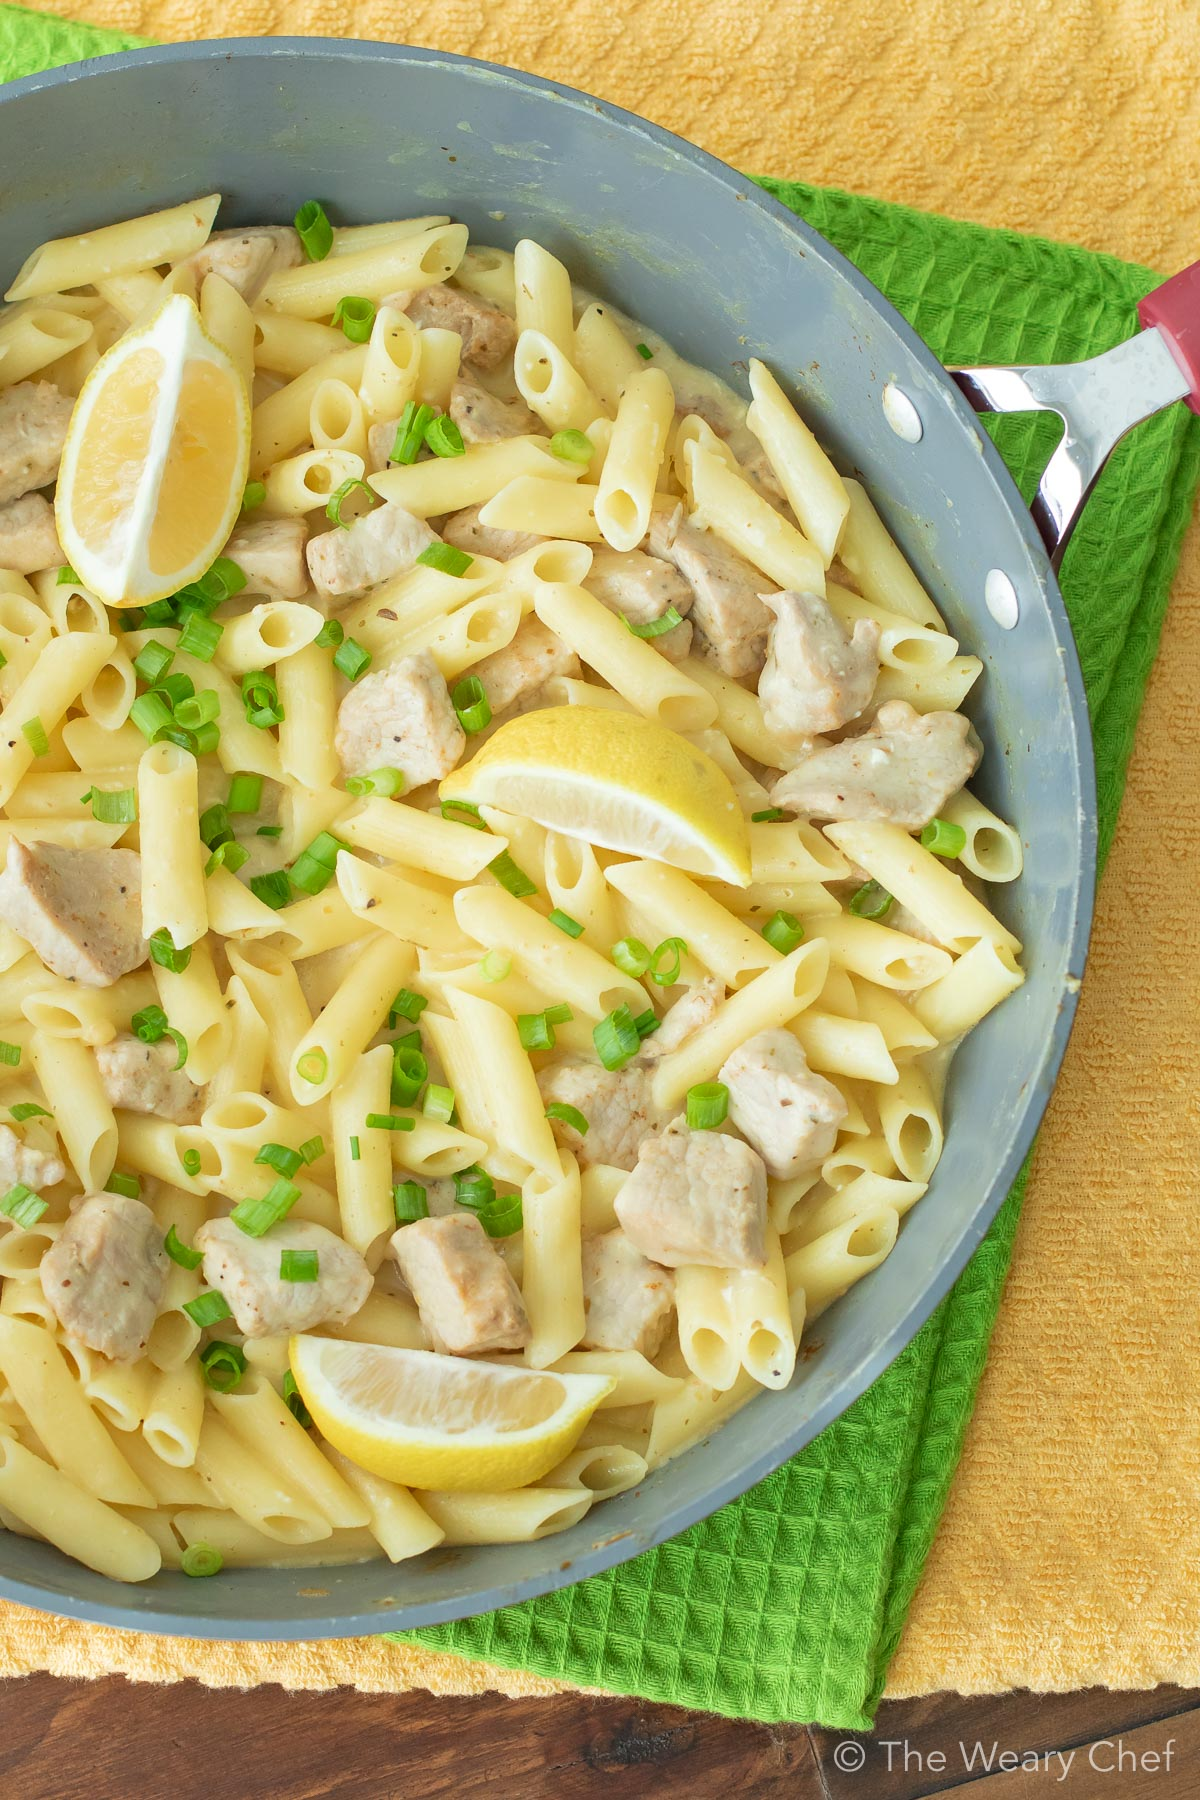 This one-pot Lemon Garlic Pasta with Pork can be on the table in about a half hour. It's a dish the whole family will love and perfect for busy nights! #thewearychef #pasta #pork #dinner #easyrecipe #sponsored